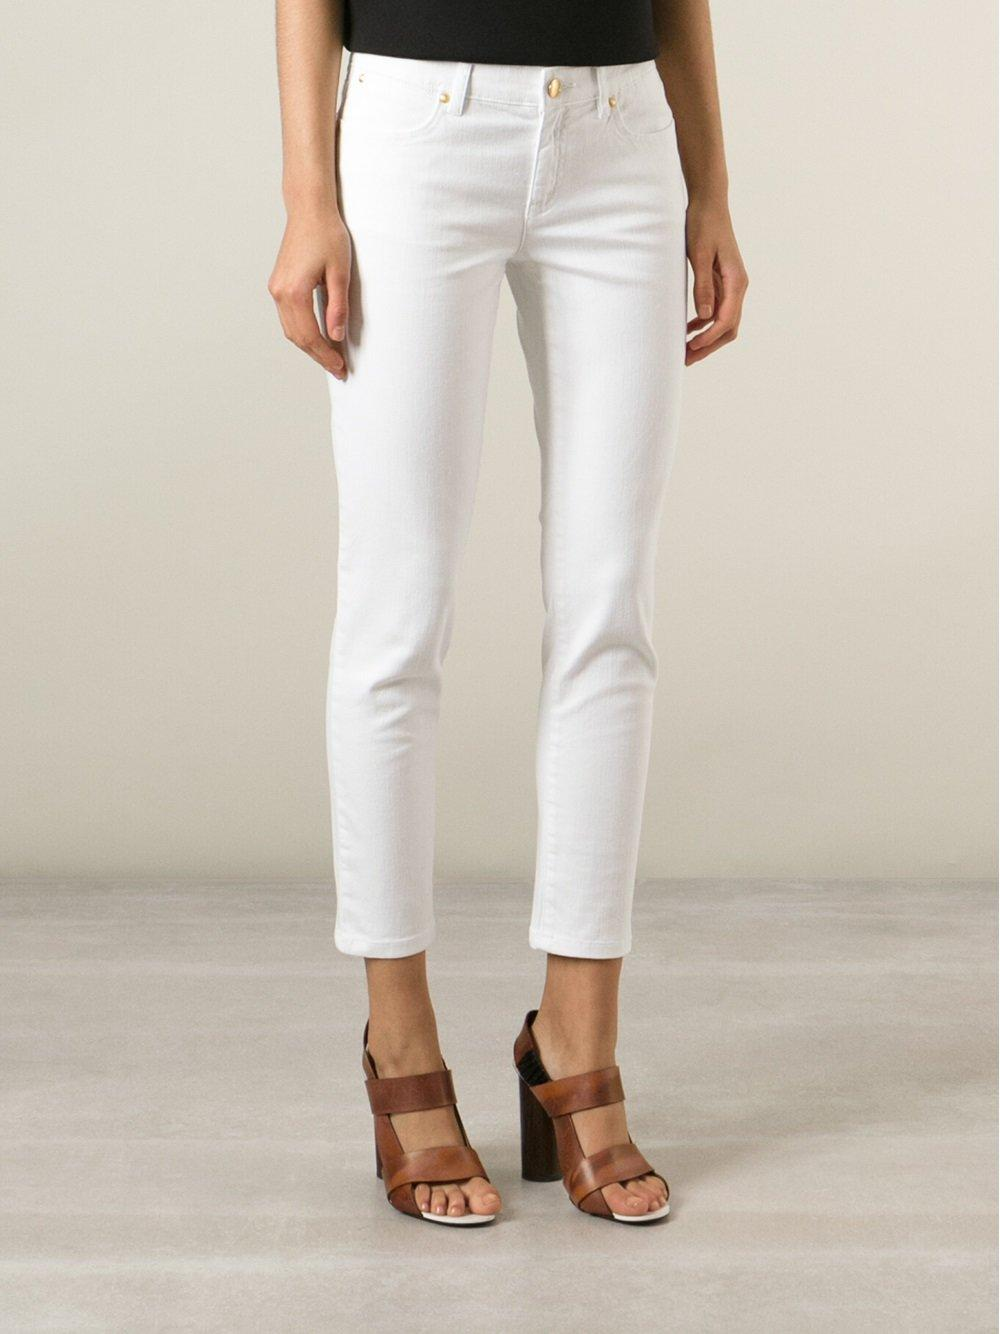 Michael Michael Kors Cropped Jeans In White Lyst